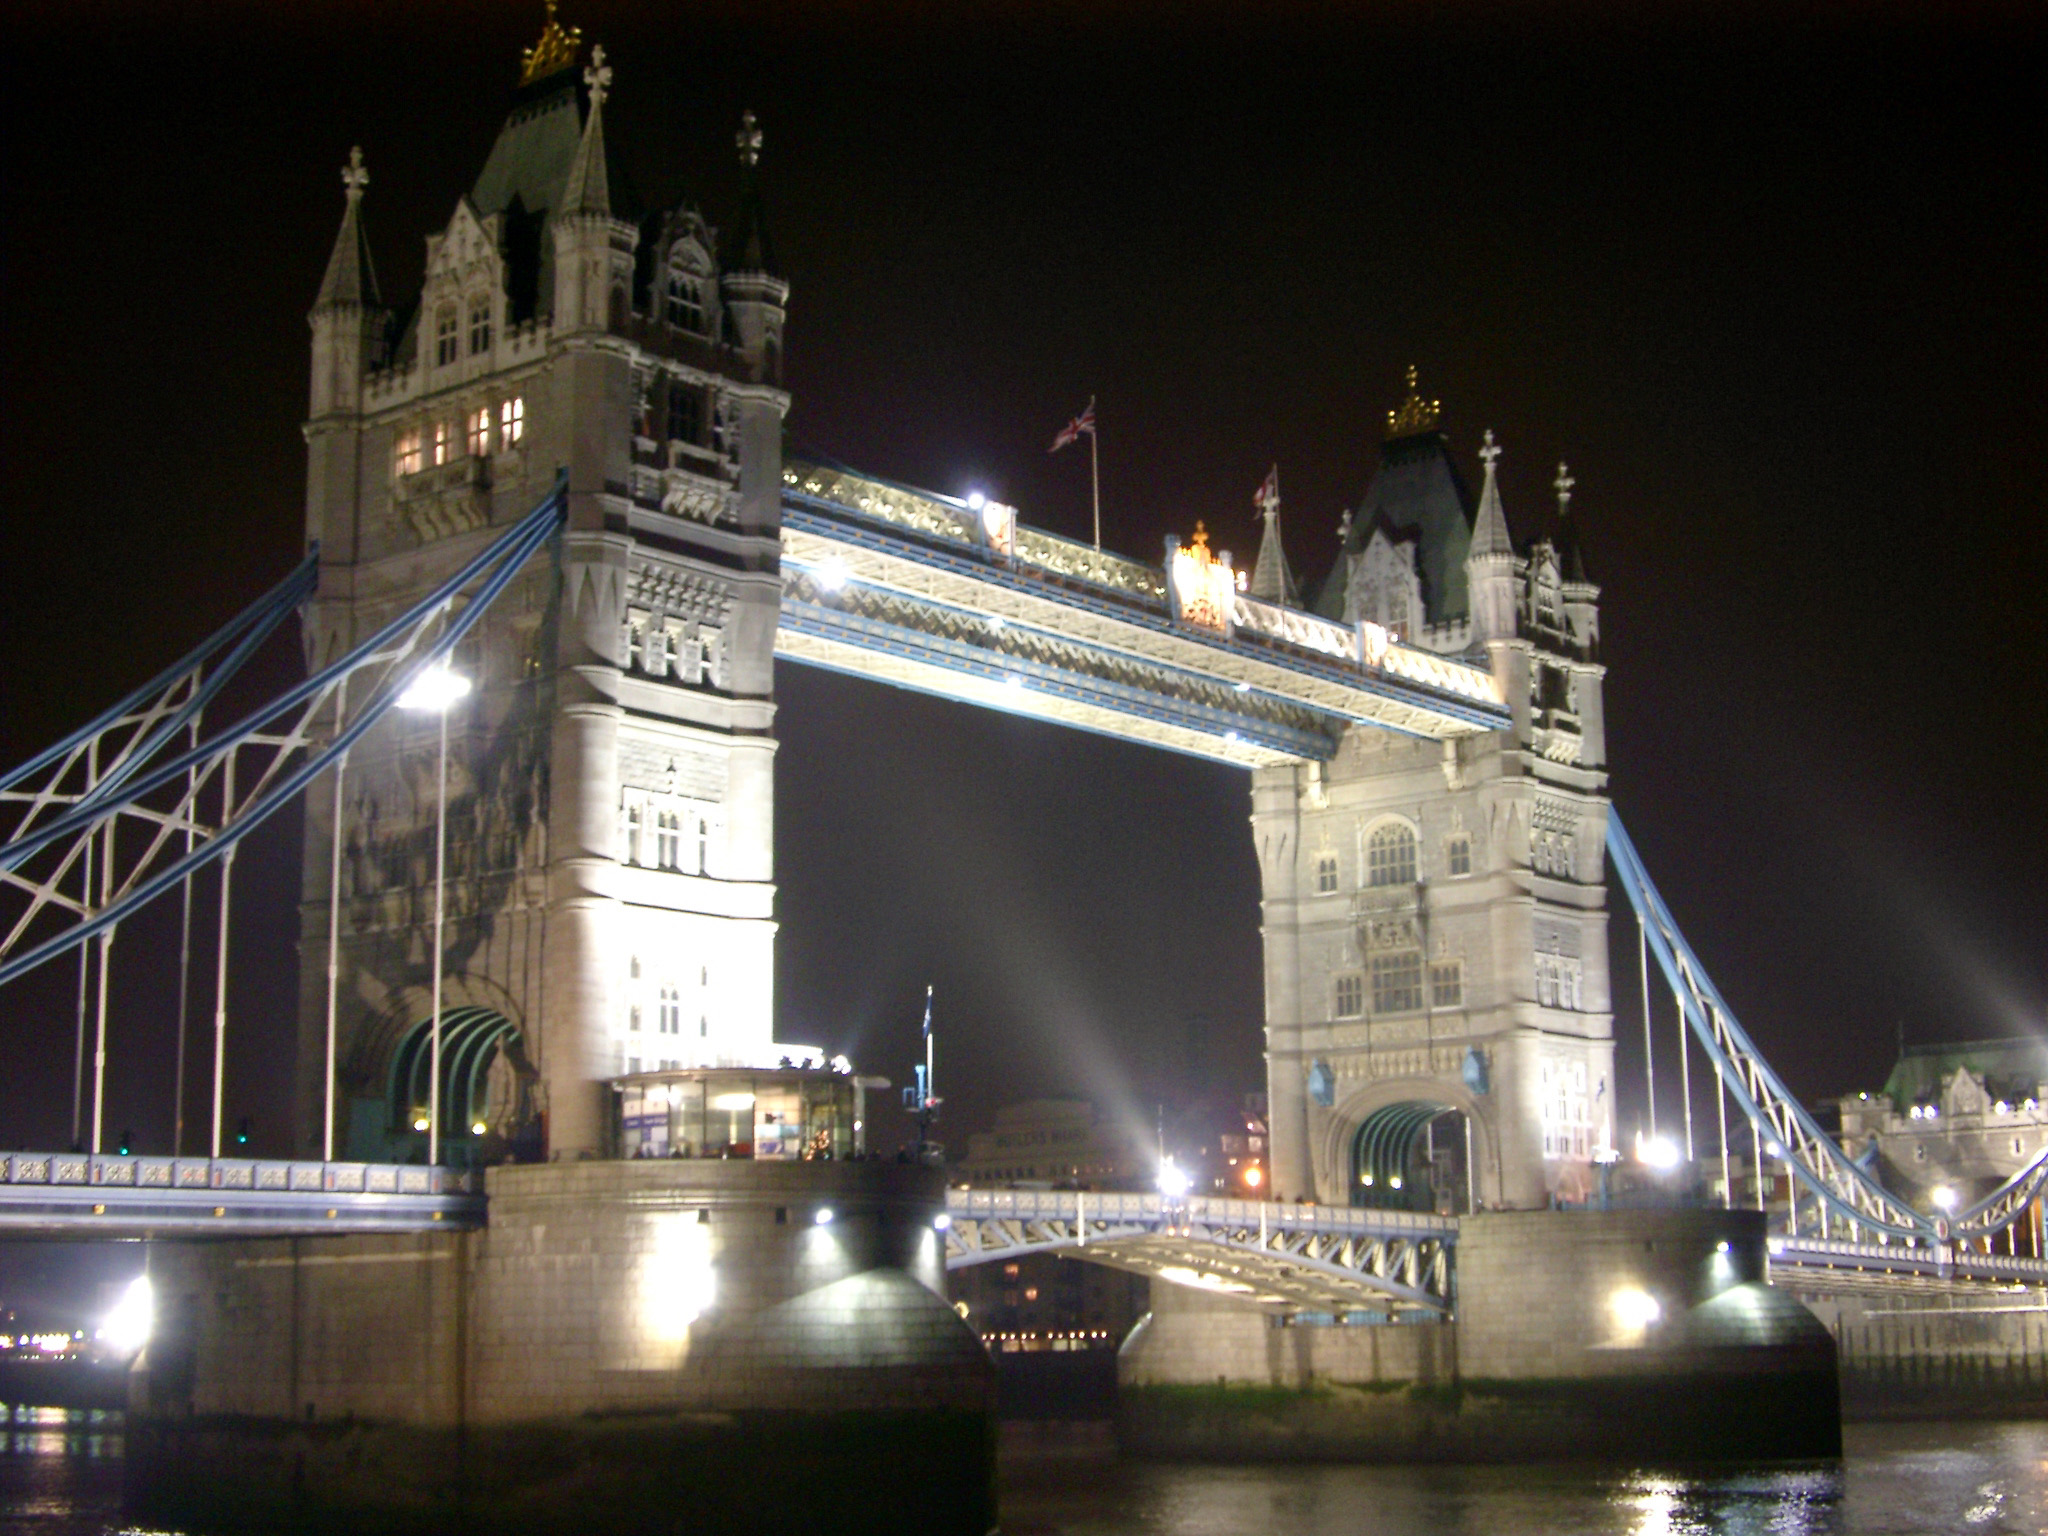 Tower Bridge in London Passing River Thames. Captured at Night Time